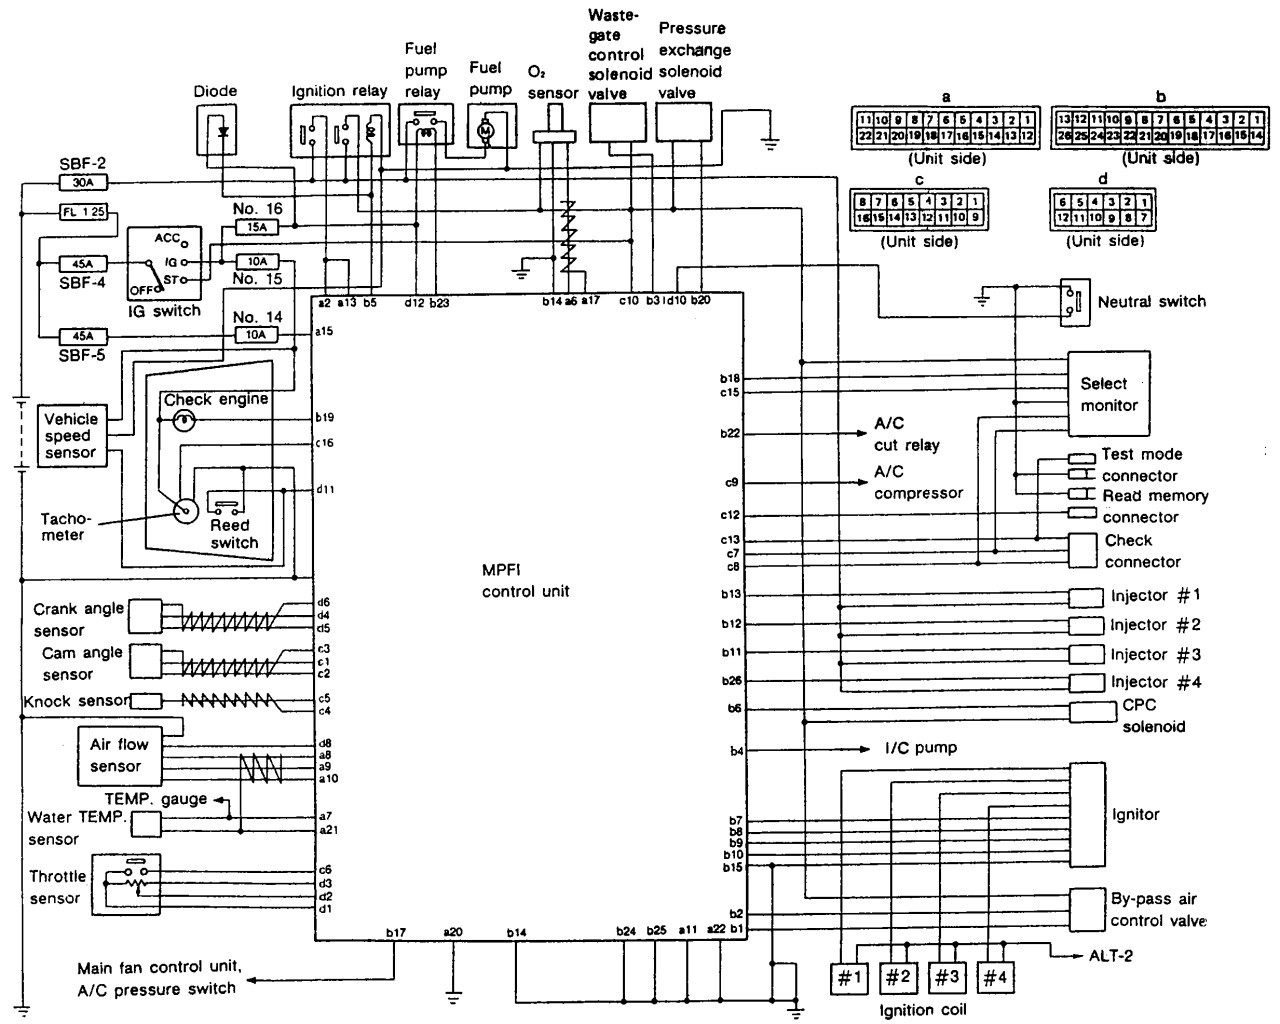 2012 Jeep Liberty Wiring Diagram from static-cdn.imageservice.cloud